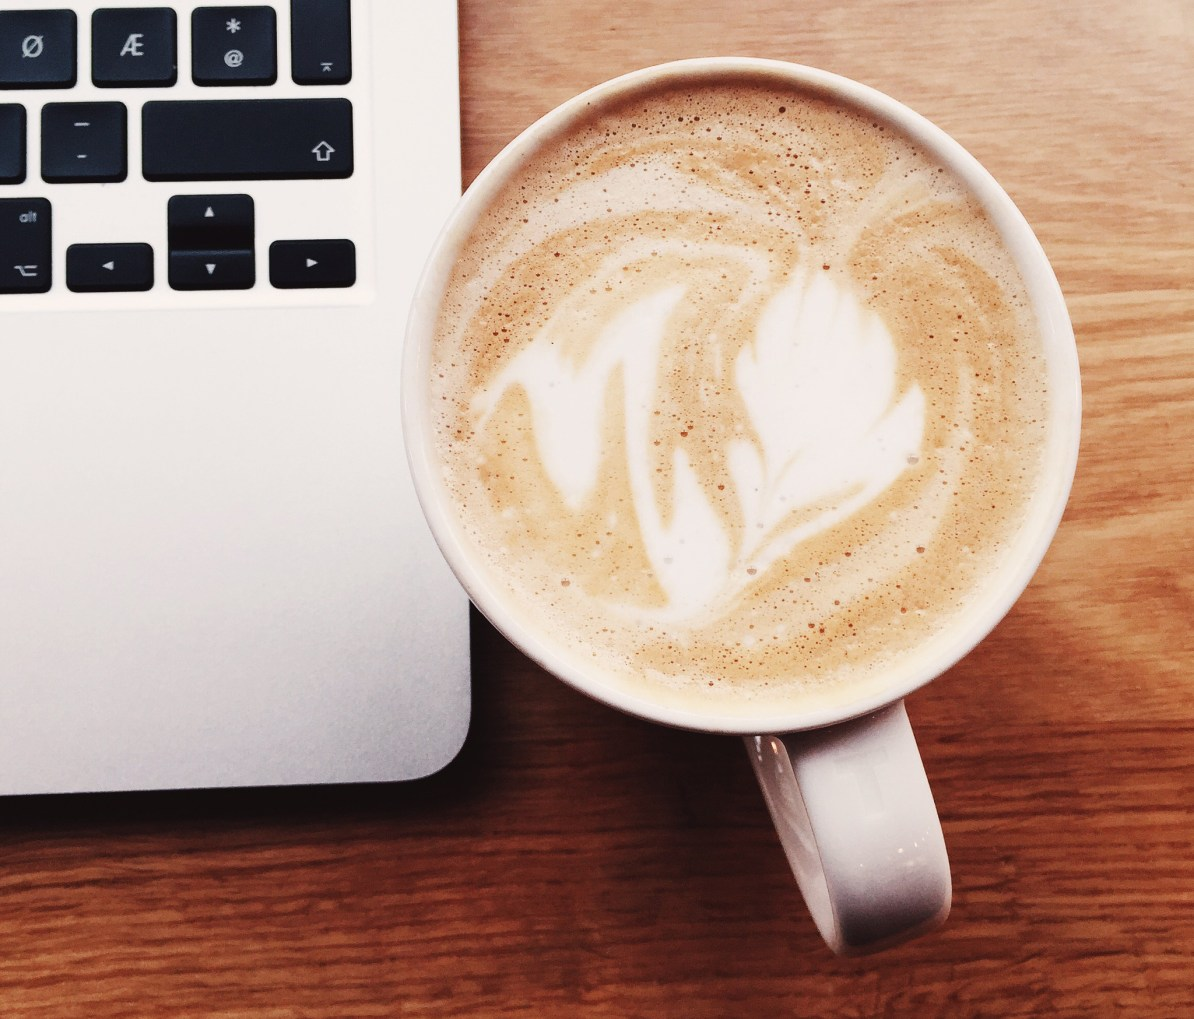 Kafékontor: MacBook og Caffé Latte!